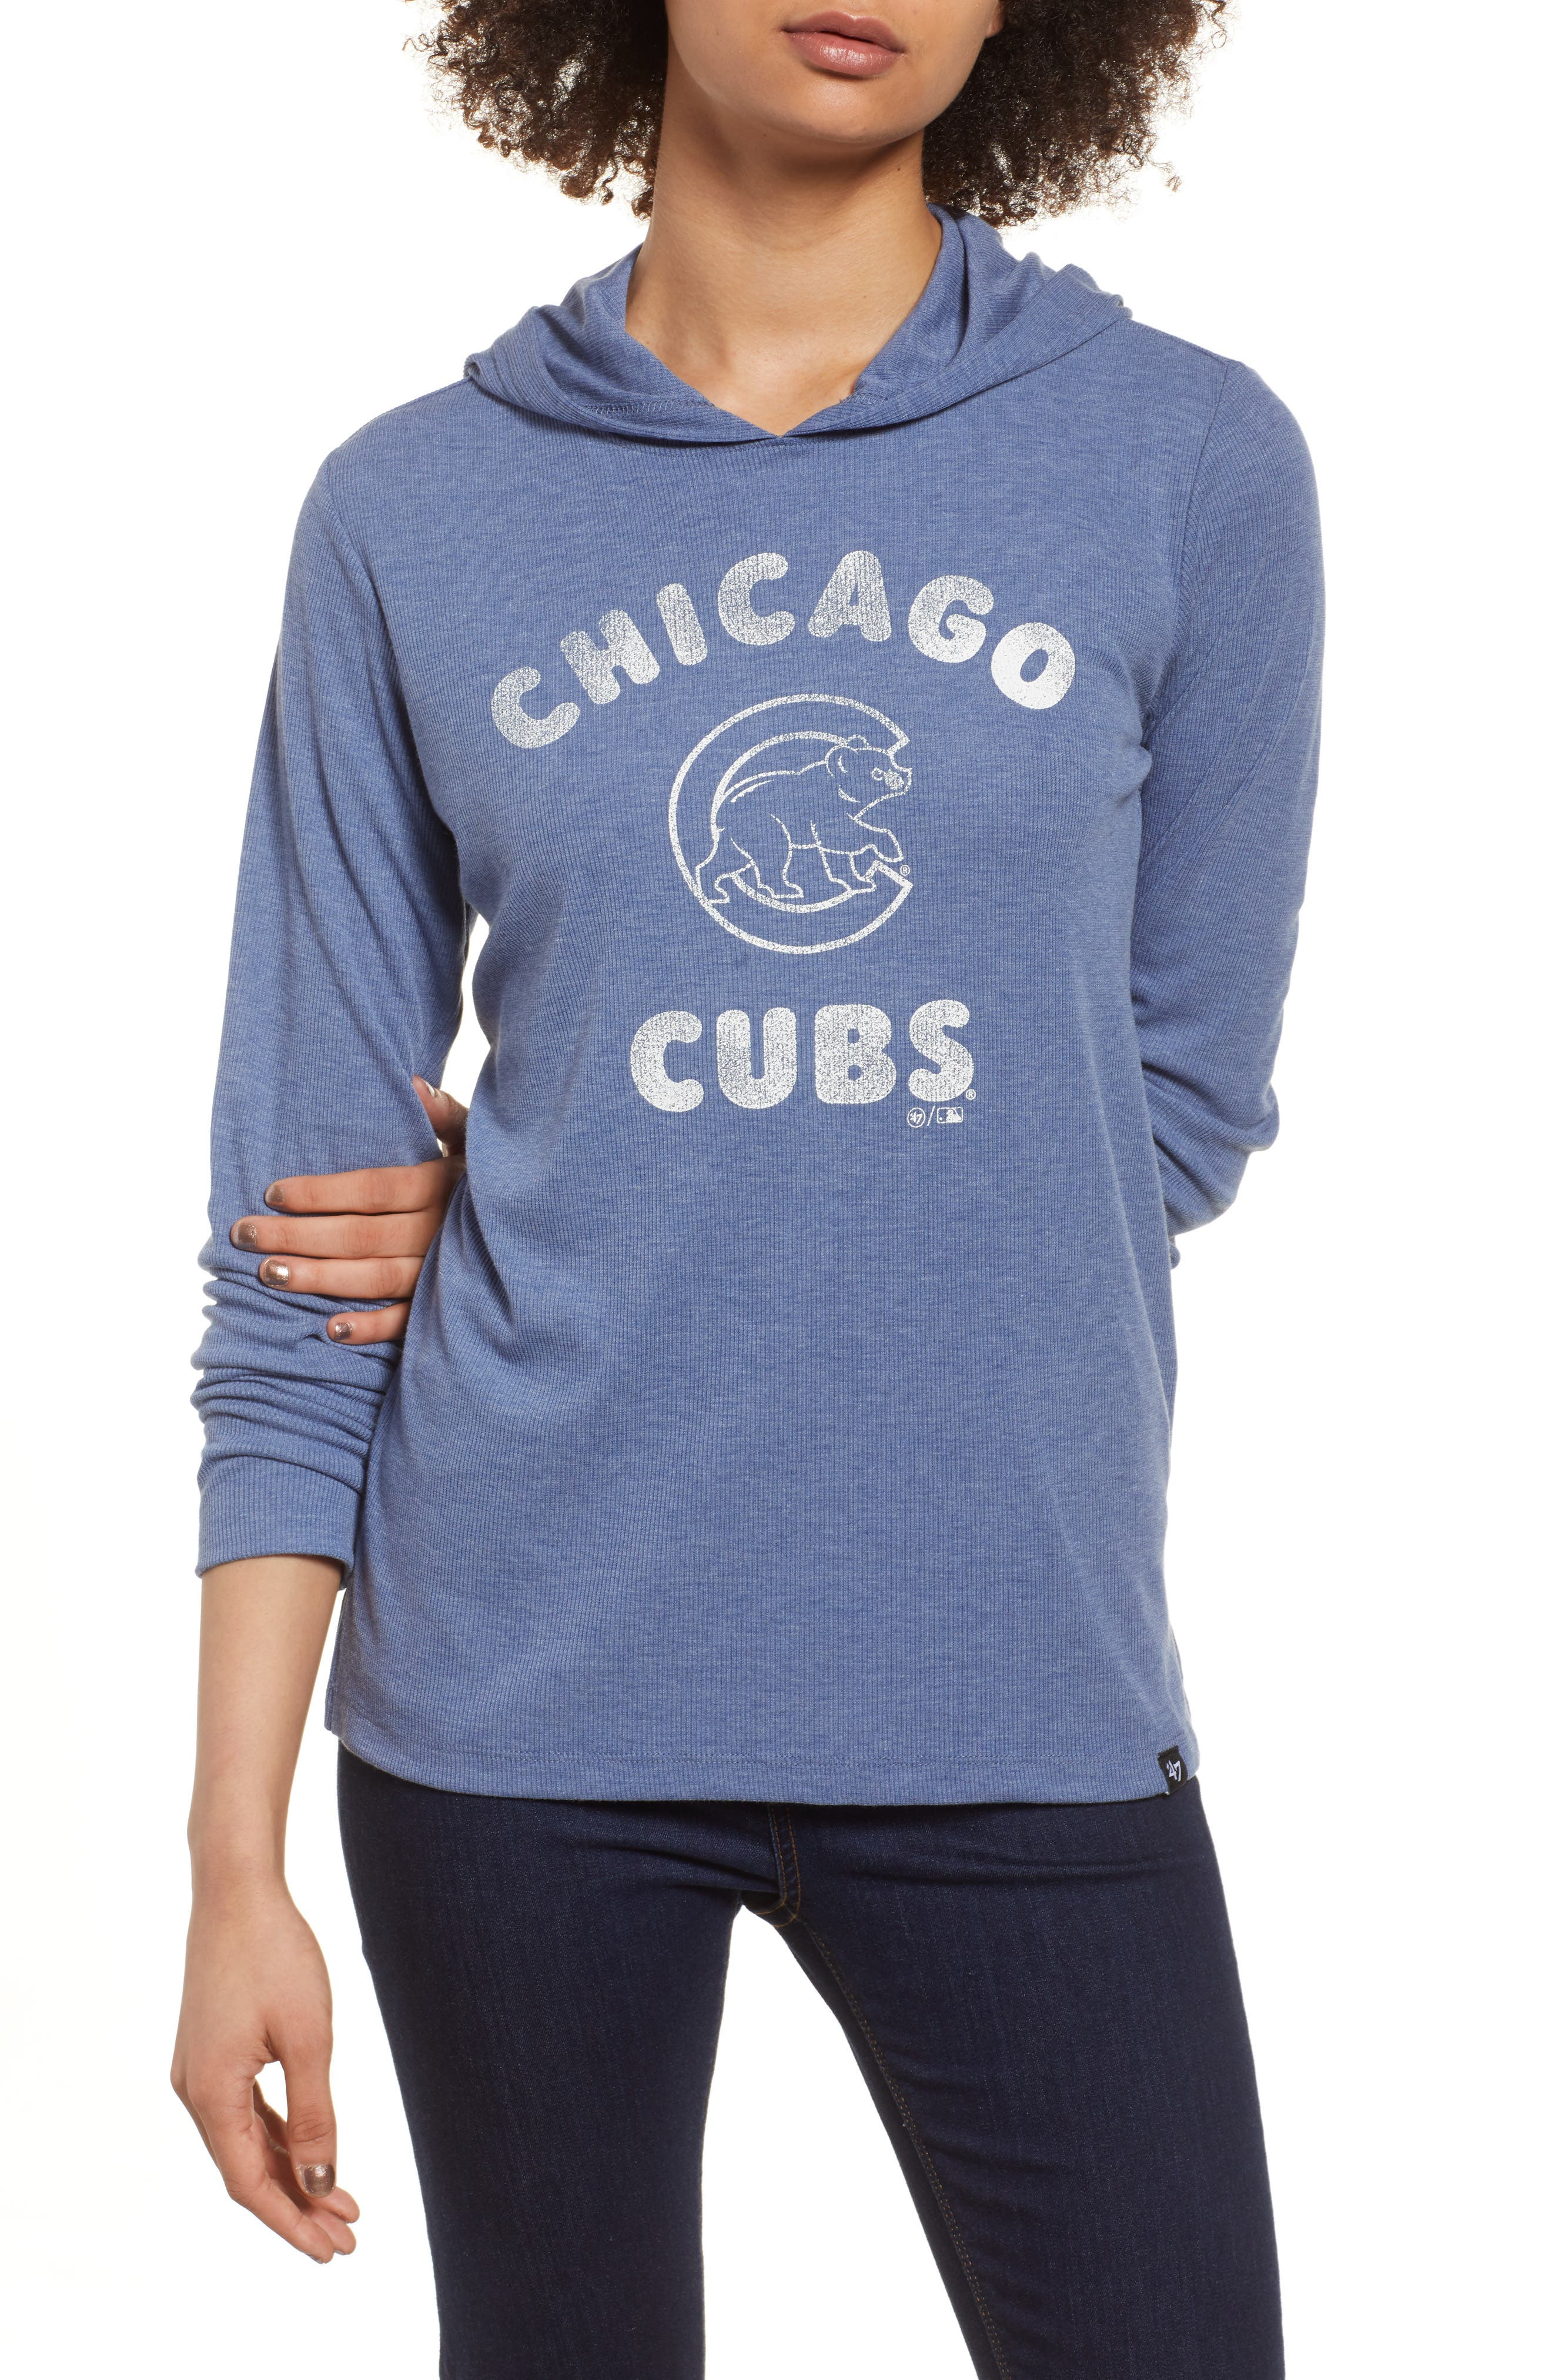 Campbell Chicago Cubs Rib Knit Hoodie,                         Main,                         color, 400